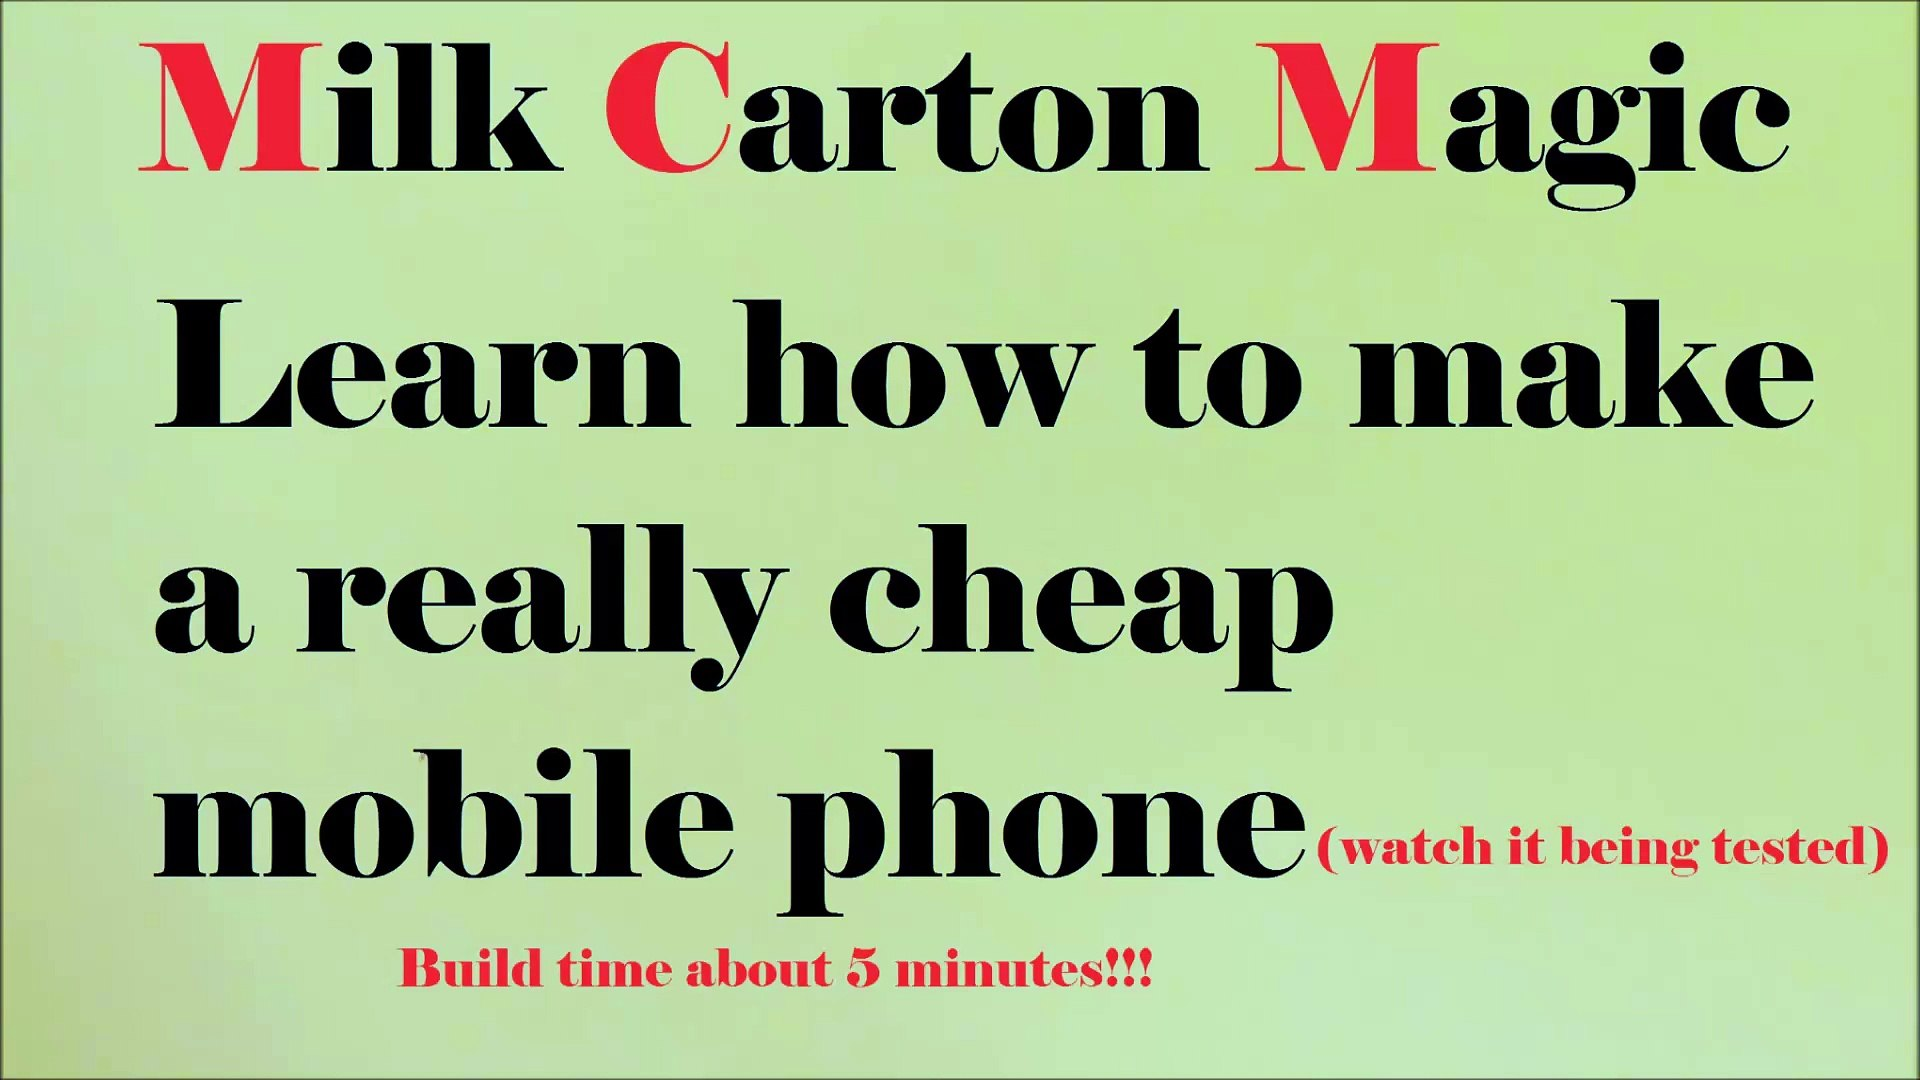 Make a cheap mobile phone WITHOUT batteries